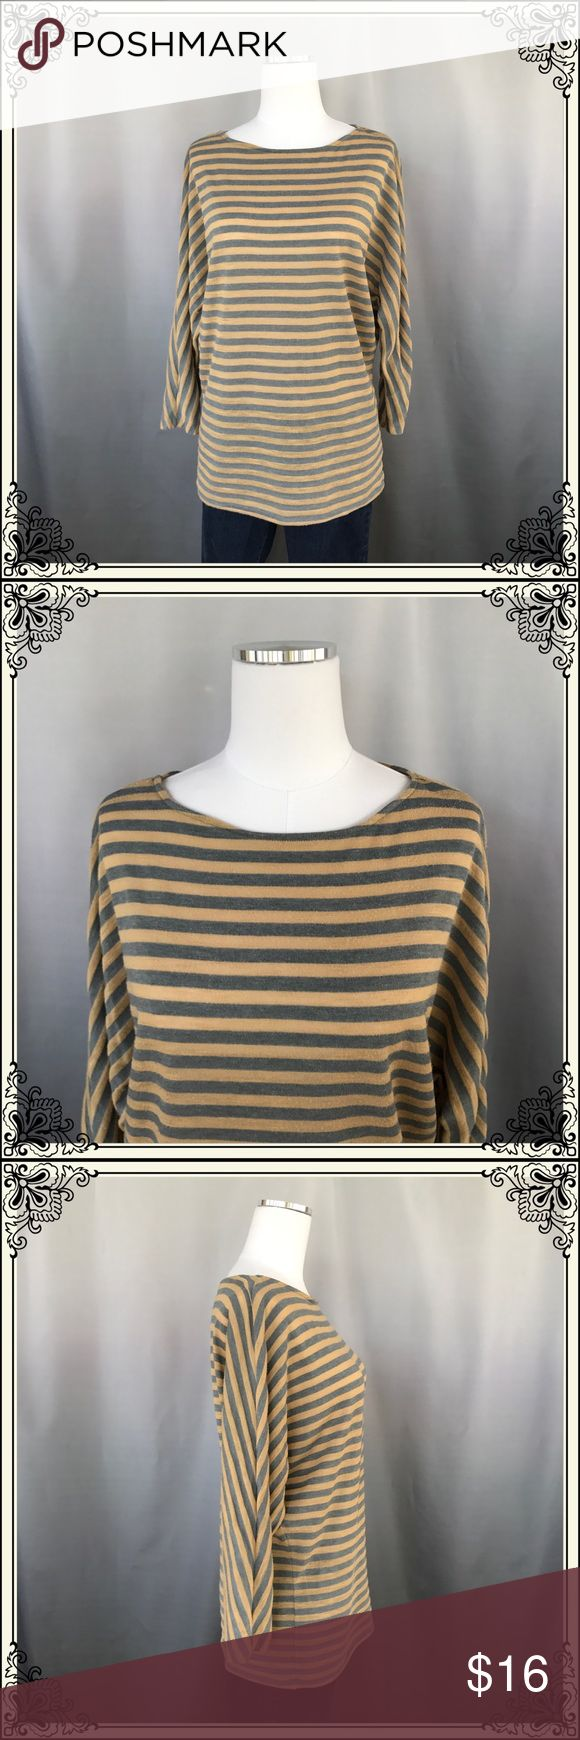 CAbi Brand Tan/Grey Striped Batwing Top #1143 This CAbi Brand Top is 70% Polyester and 30% Rayon. Is is long sleeved and is loose at hem. Oh so comfortable. LUC. Now stains, rips, holes or snags. CAbi Tops